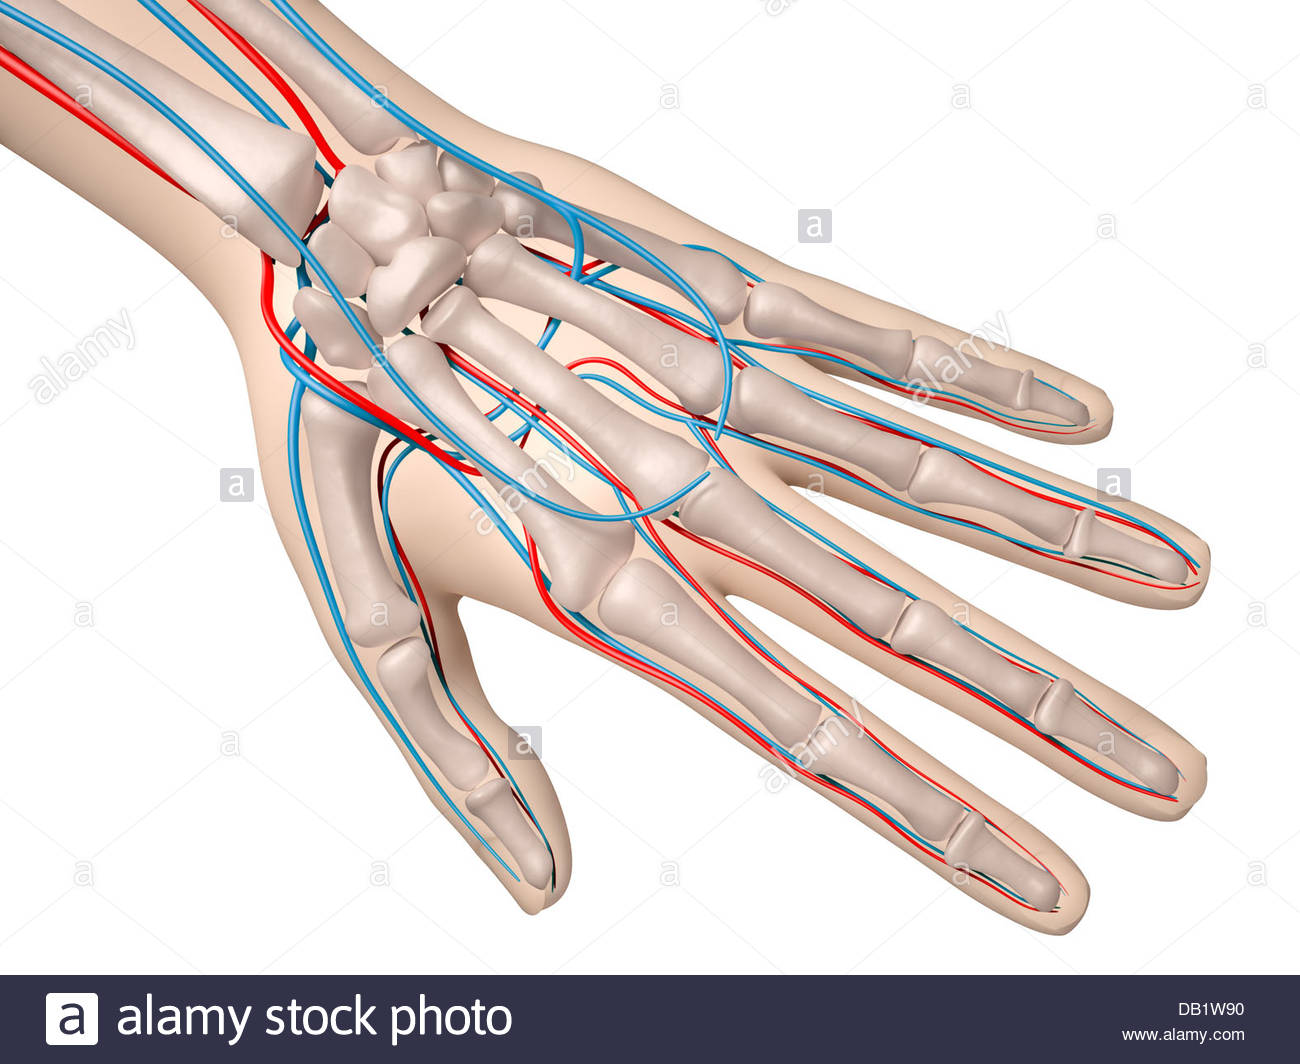 hight resolution of digital medical illustration depicting the hand featuring the skeleton arteries and veins stock